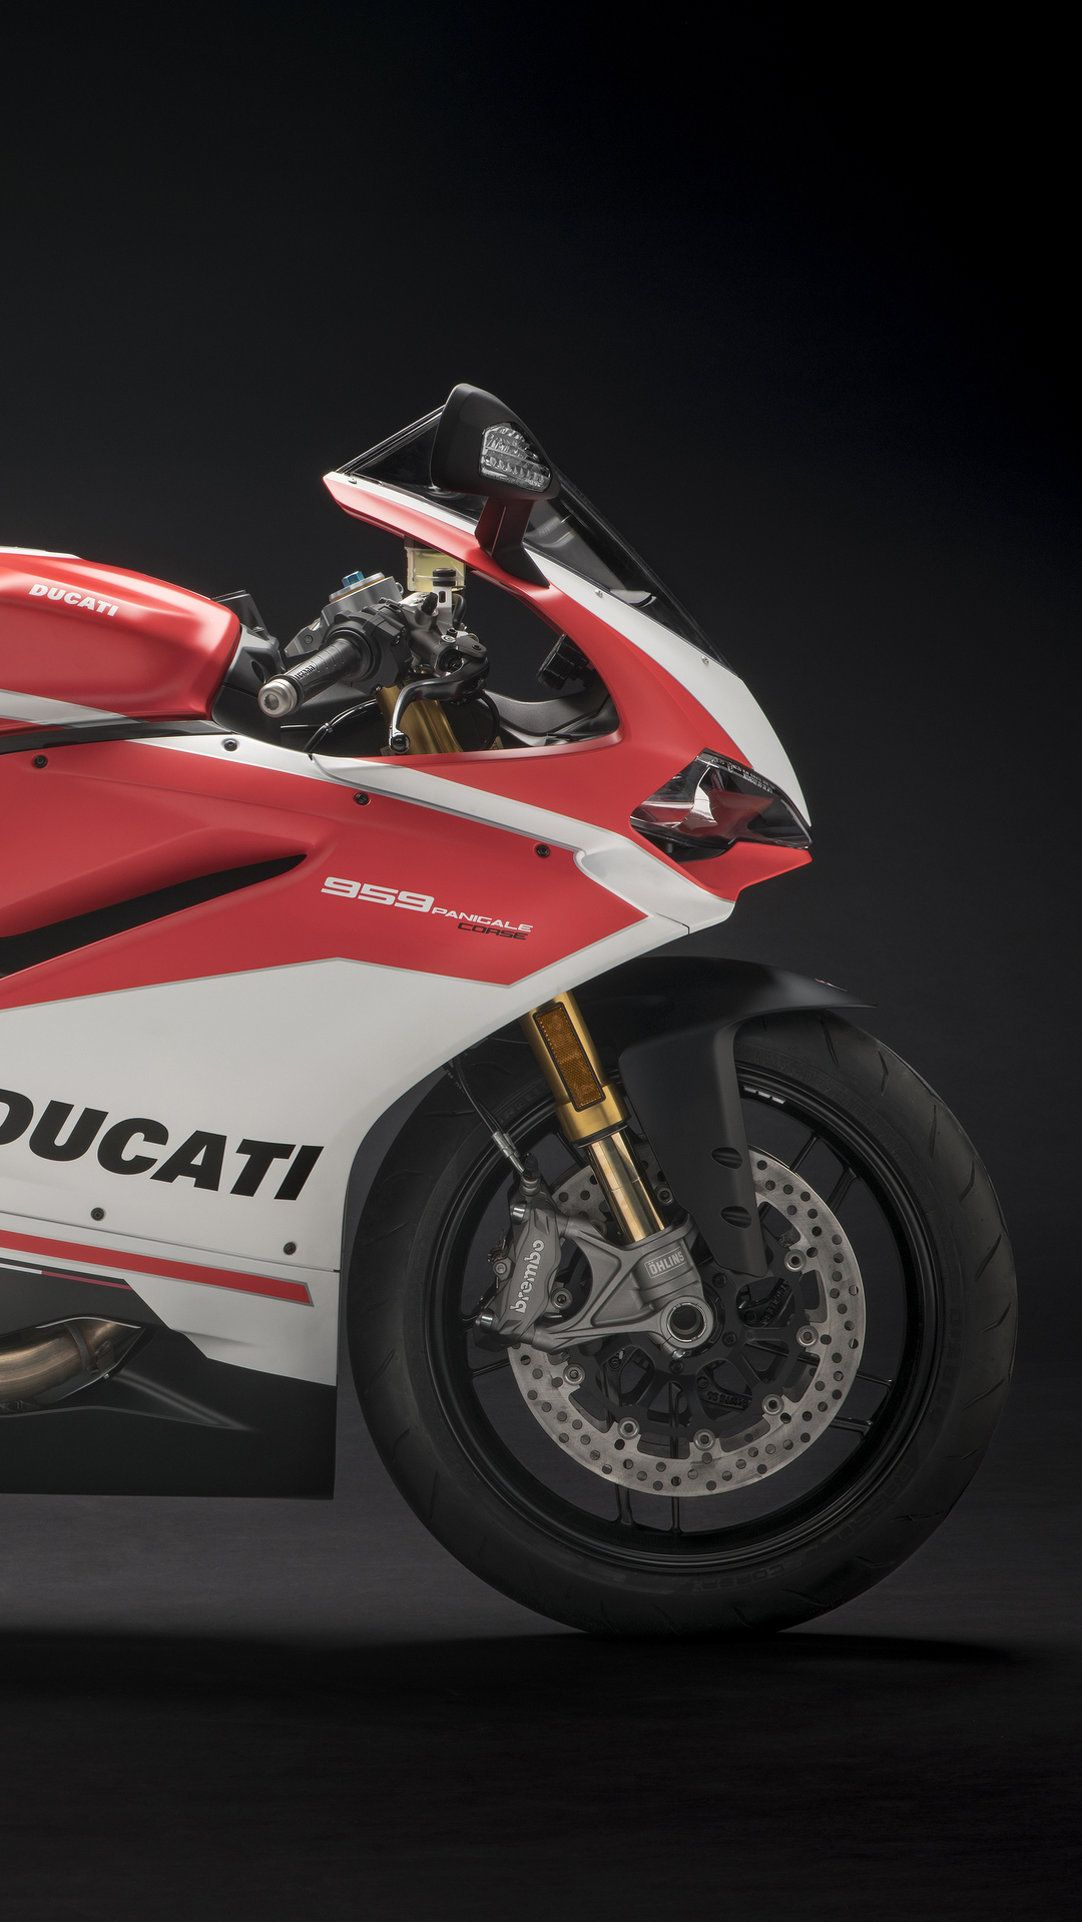 Ducati Bike 4k Wallpaper Ducati Monster Ducati Iphone Hacks